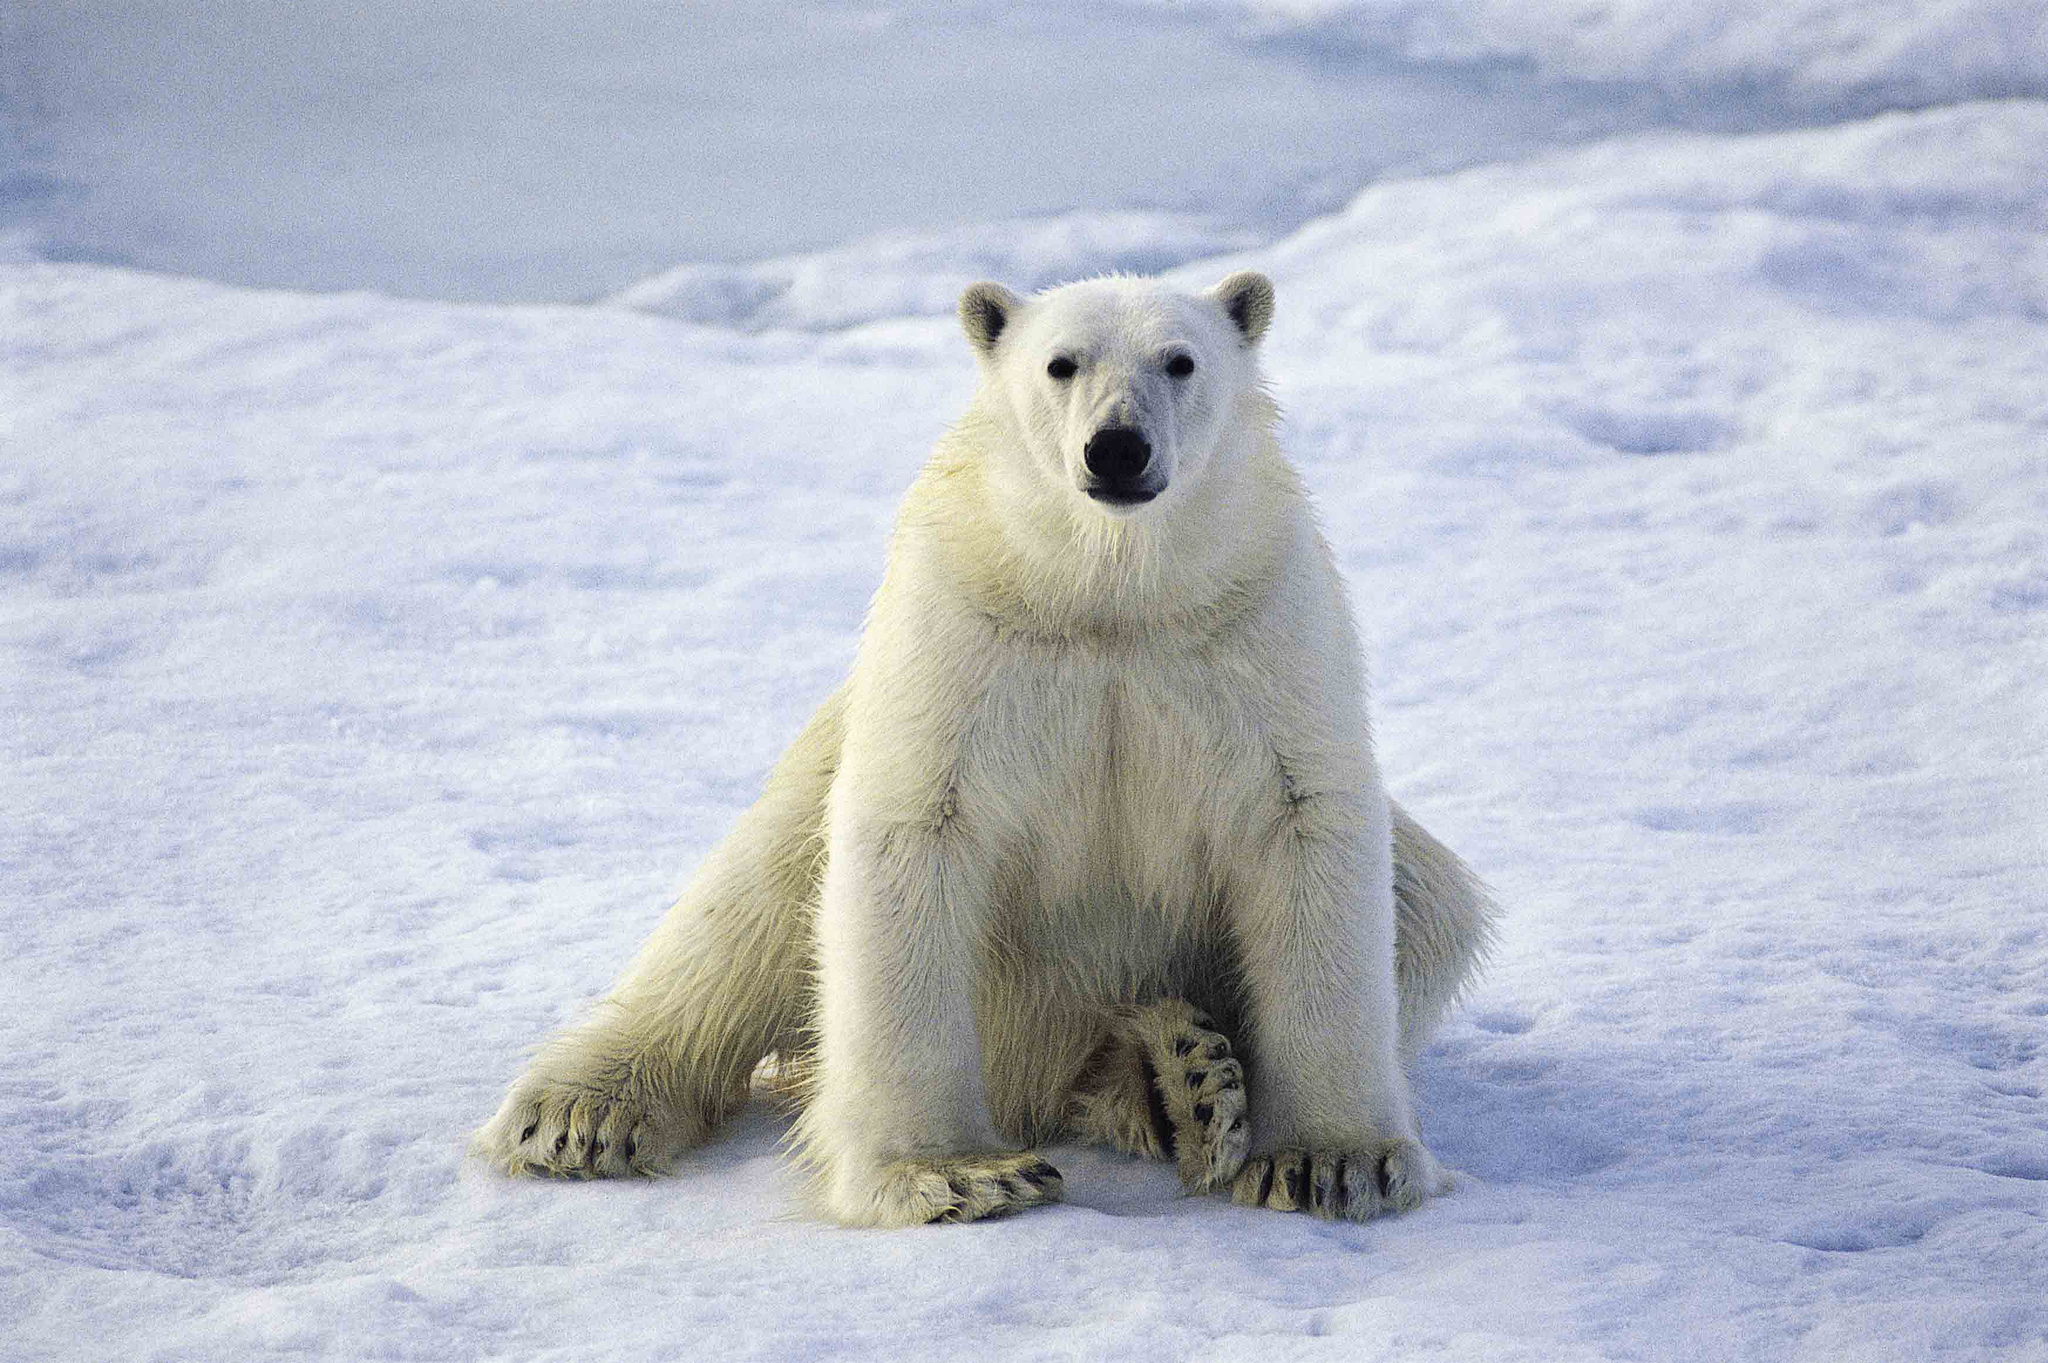 Can Polar Bears Be Saved?